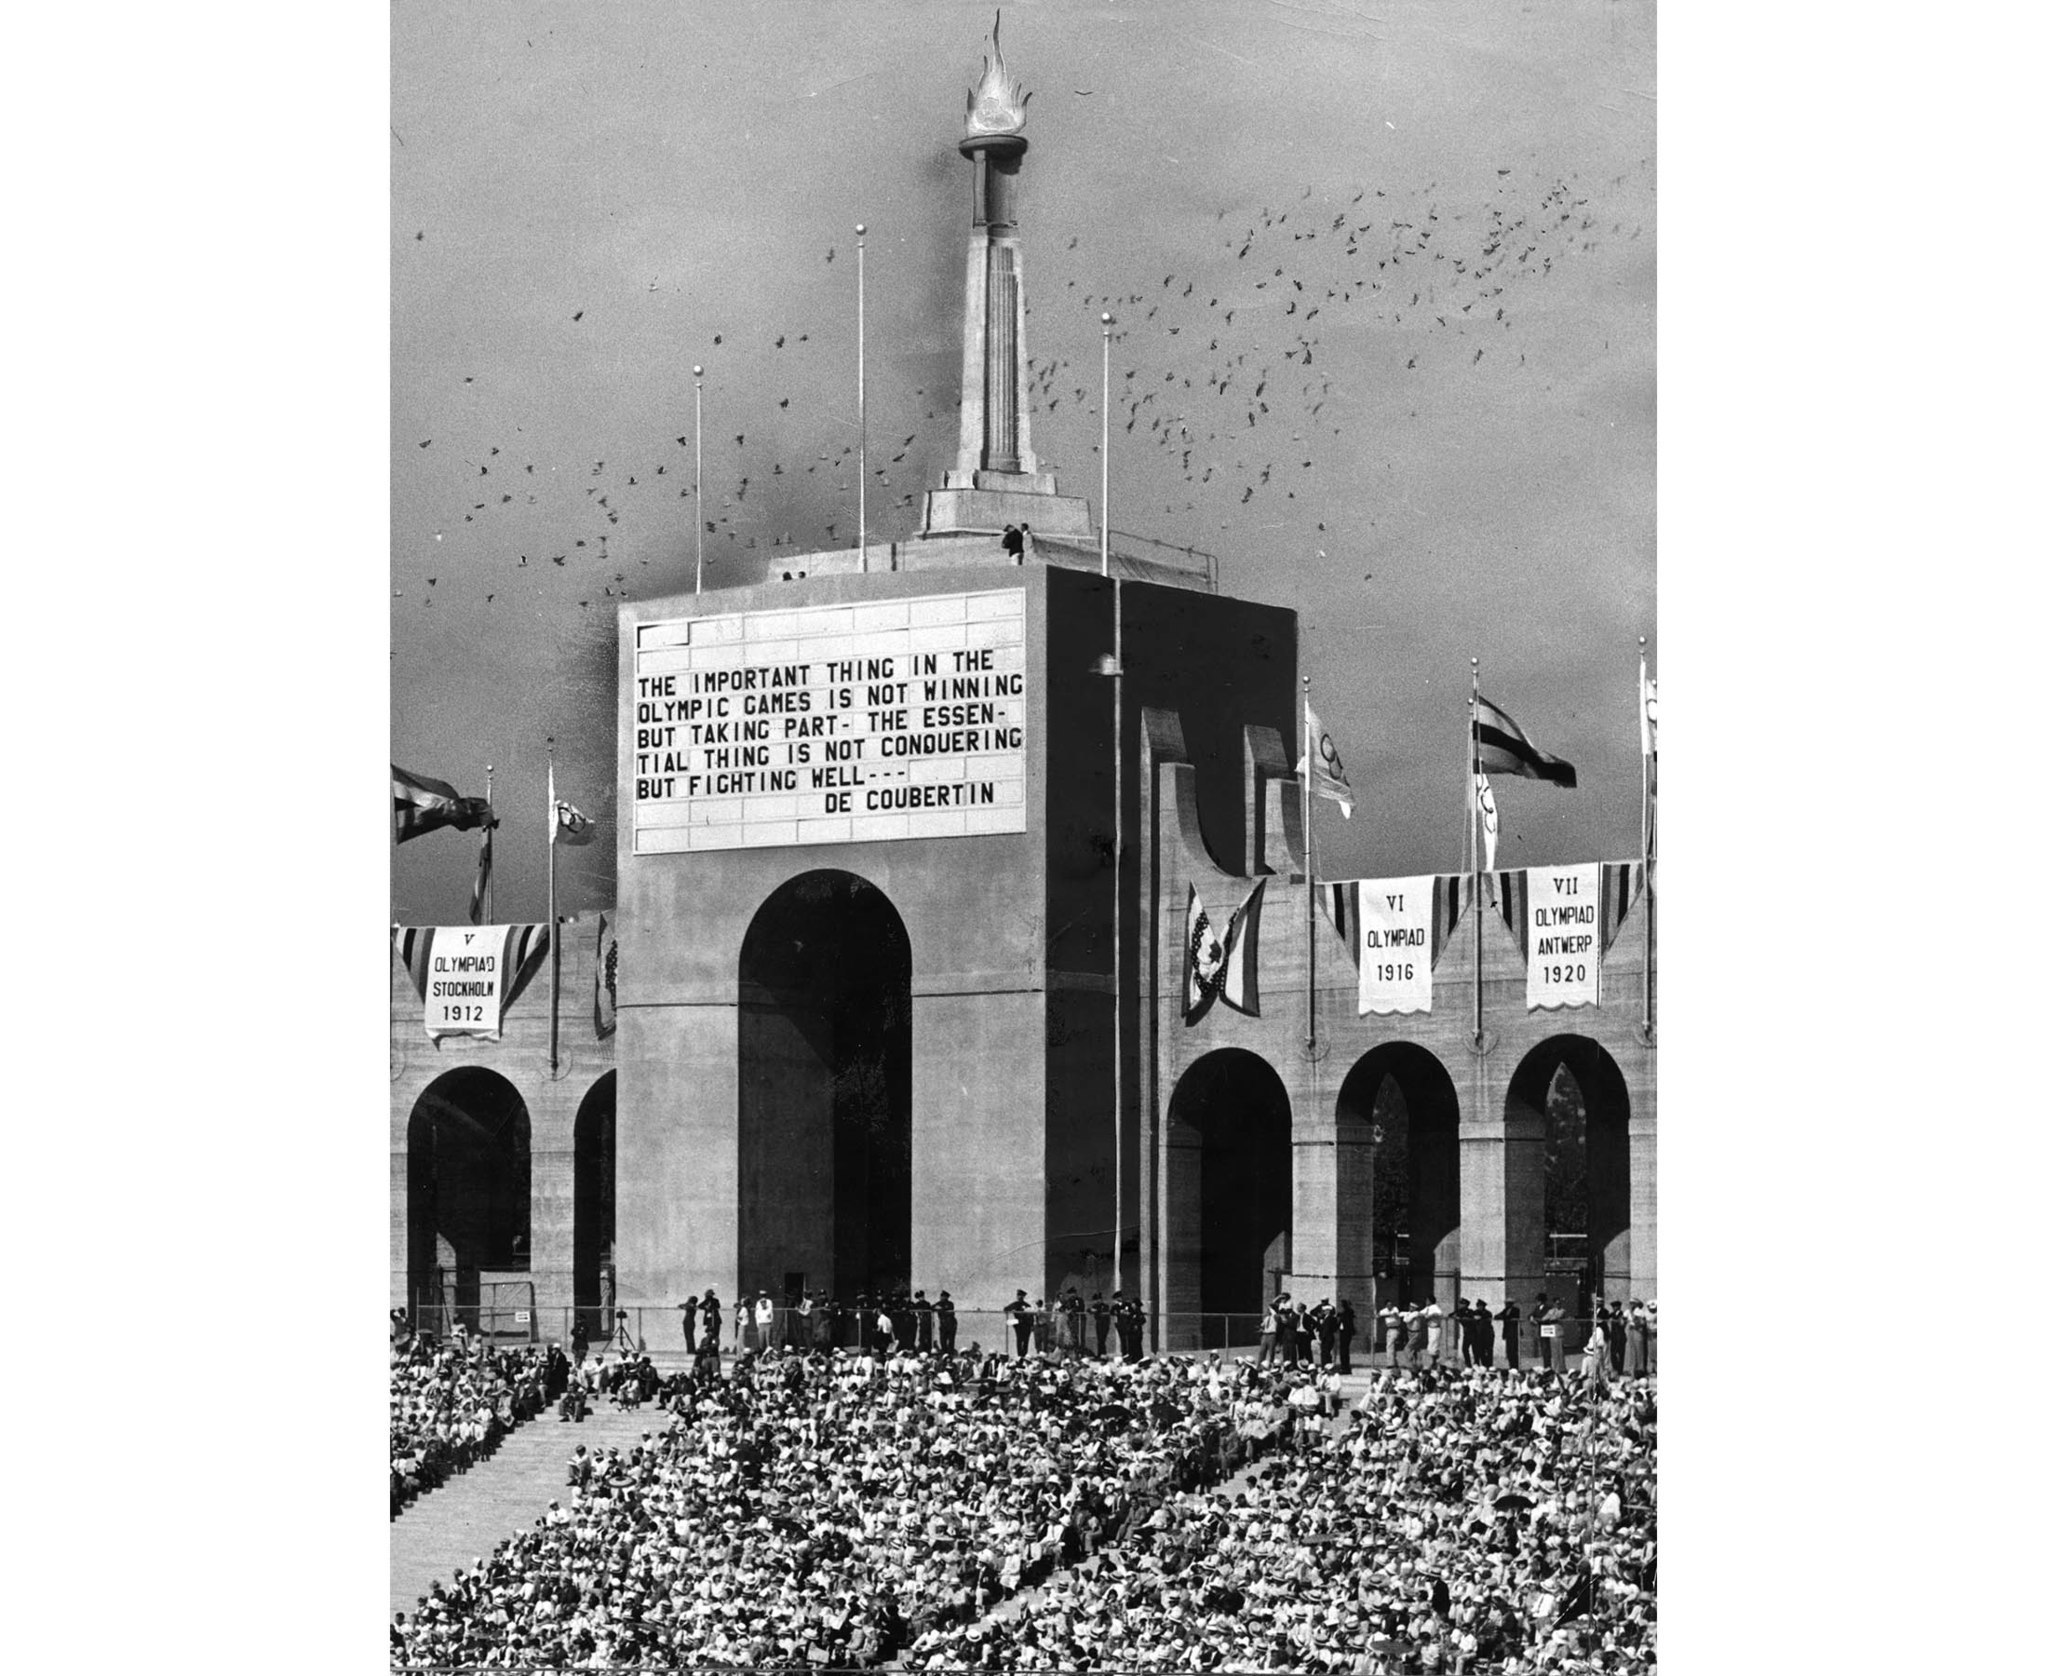 July 30, 1932: Opening ceremonies of the 1932 Olympics at the Los Angeles Memorial Coliseum.